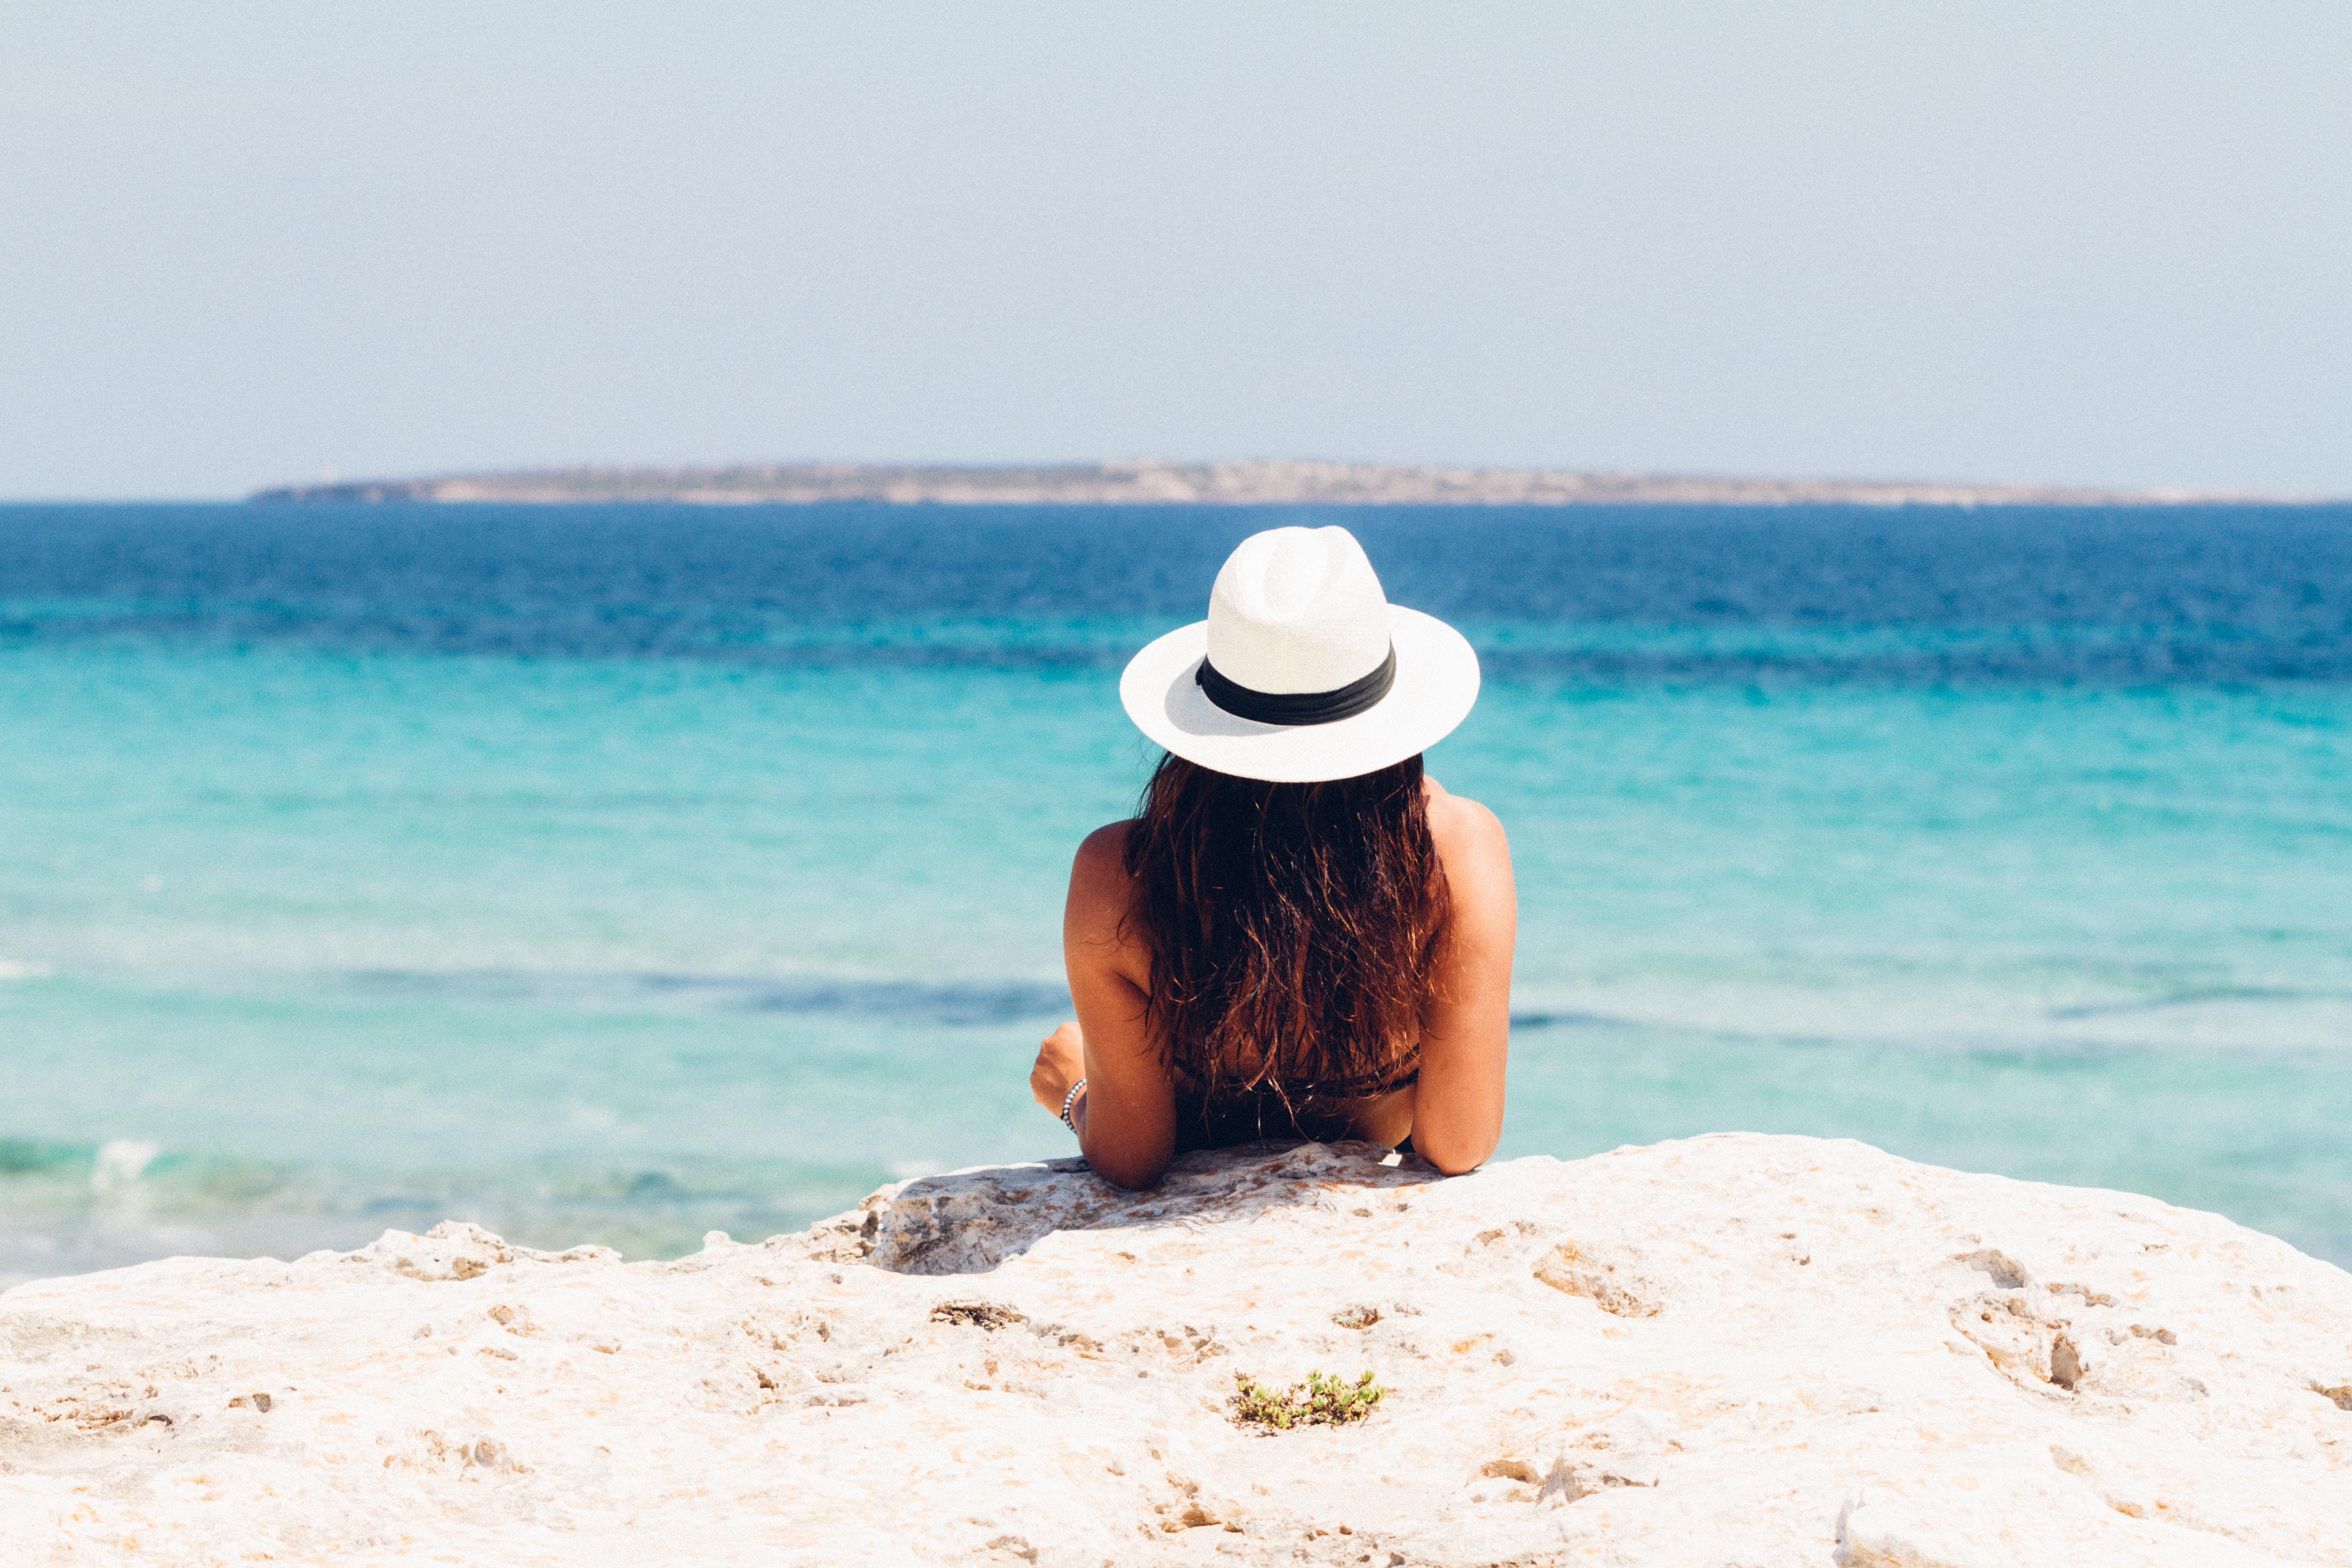 Woman on beach with white hat sand